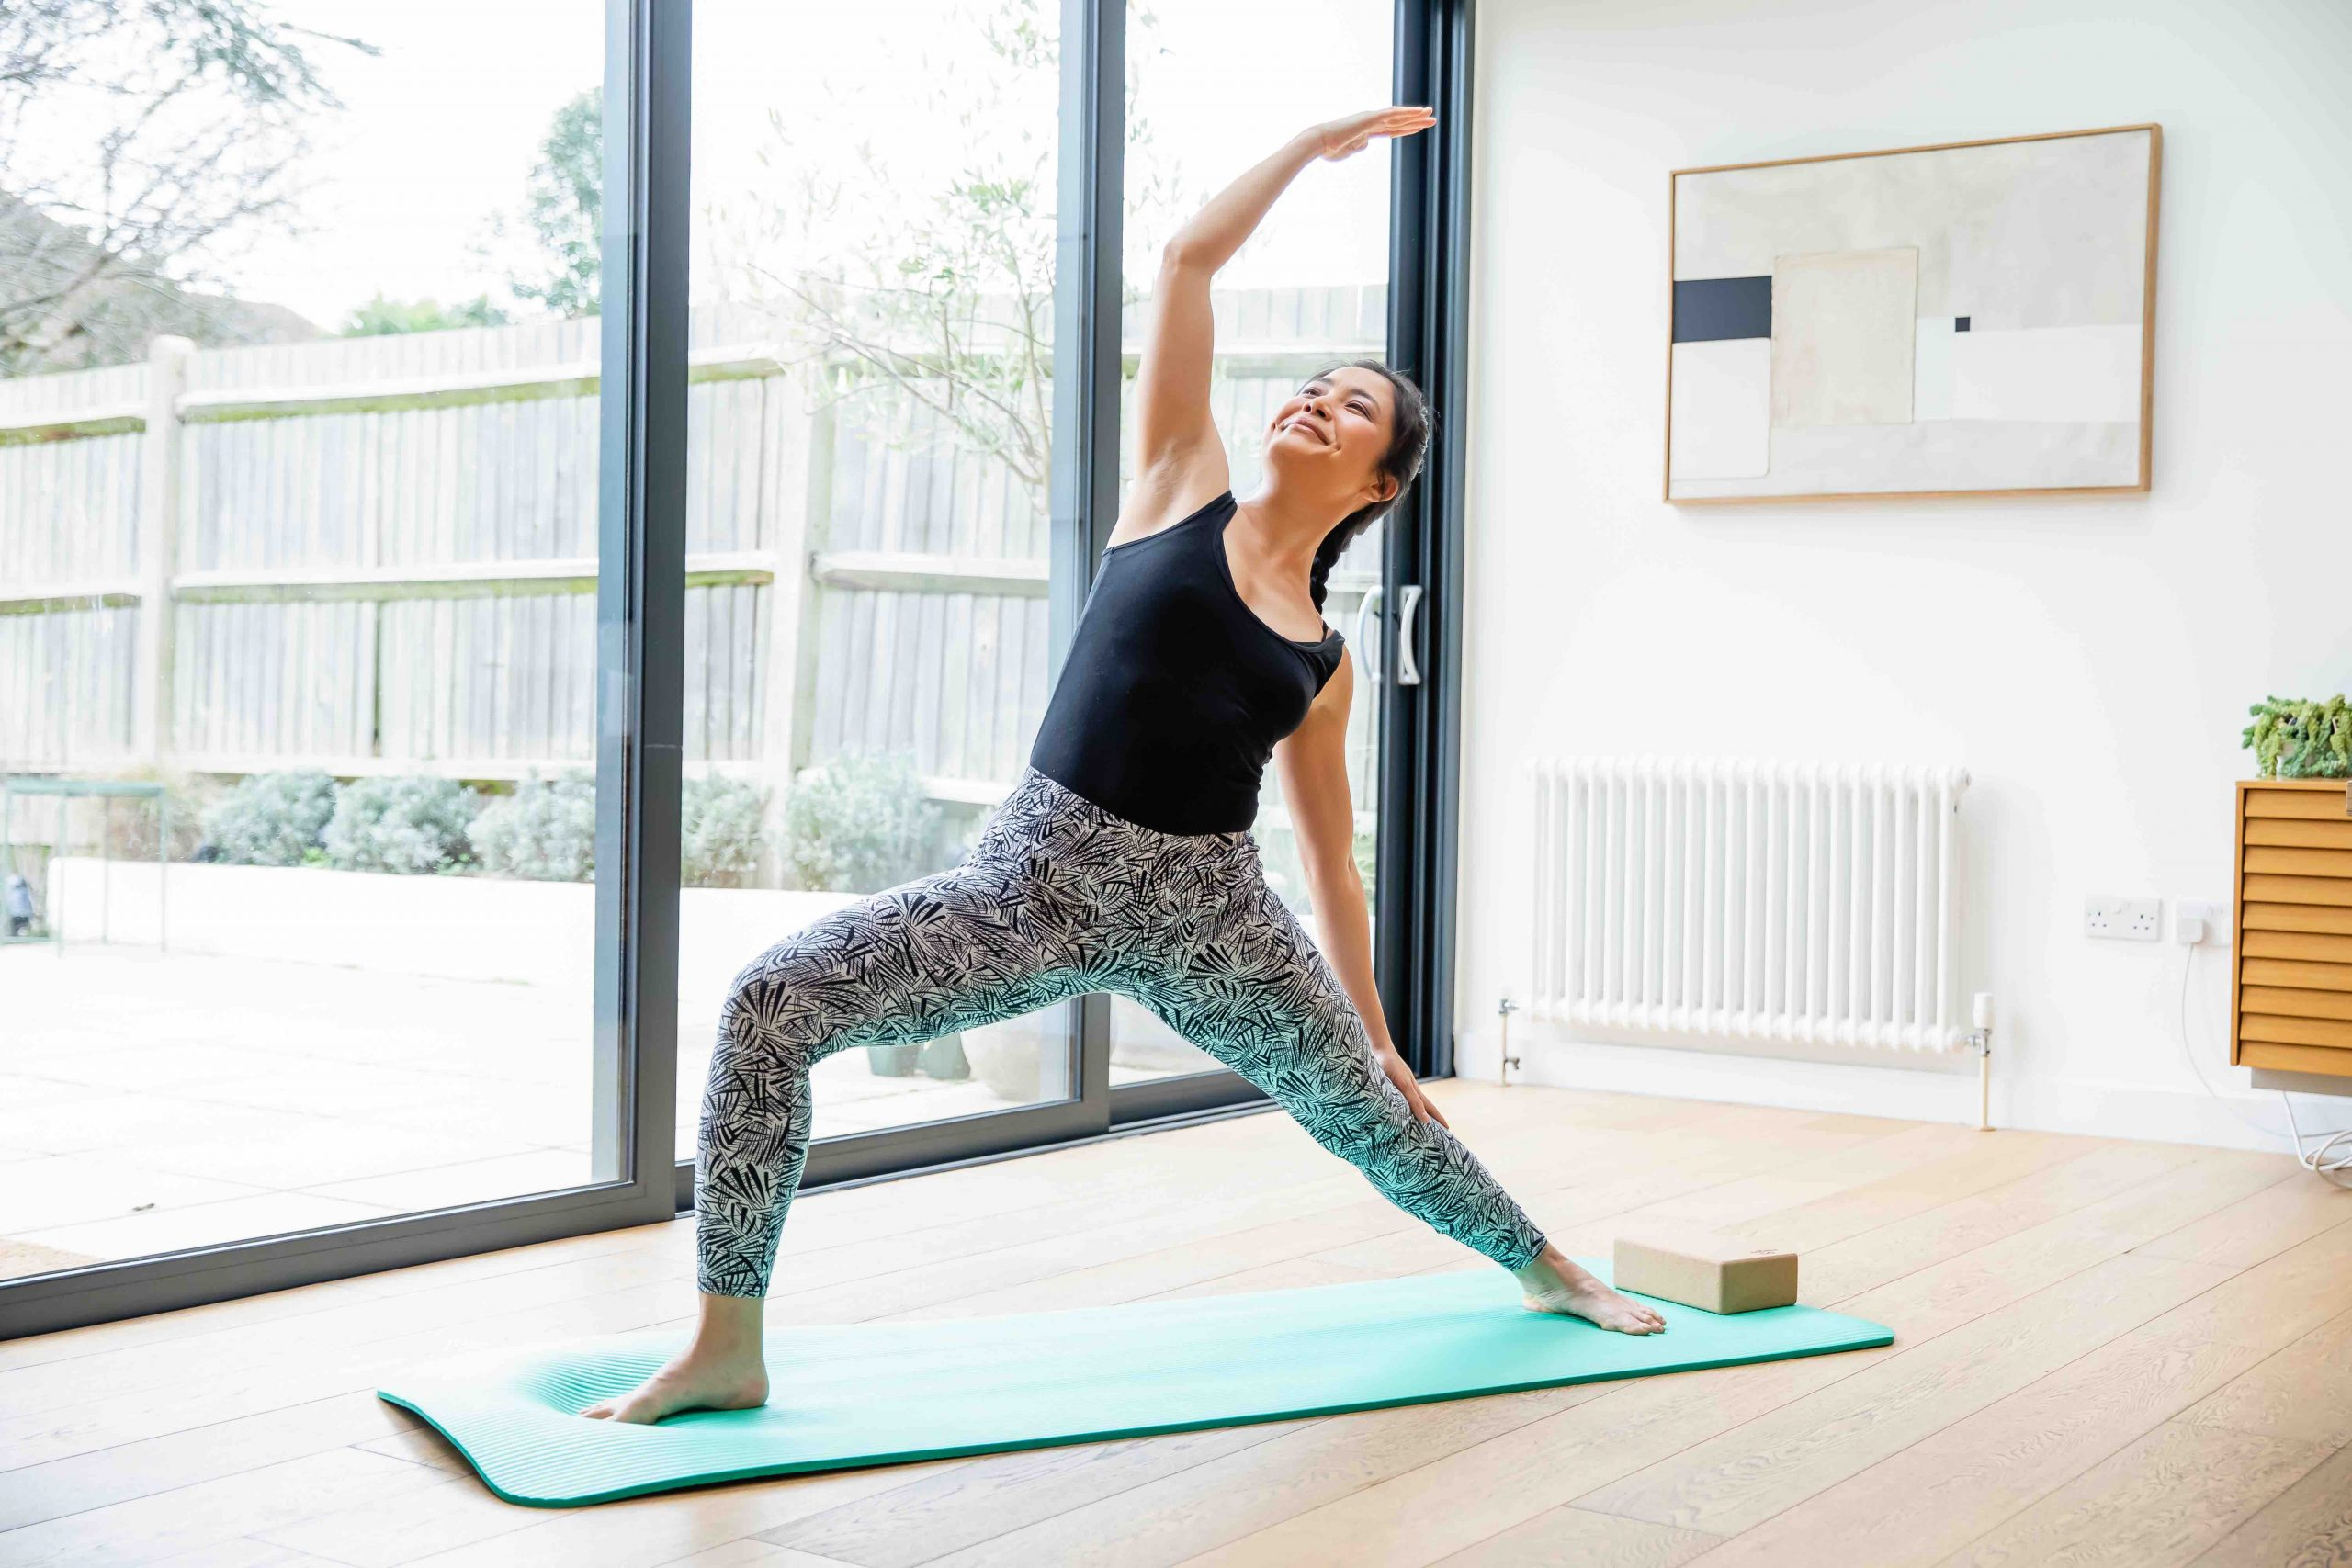 What is sports yoga and how can it help our running?